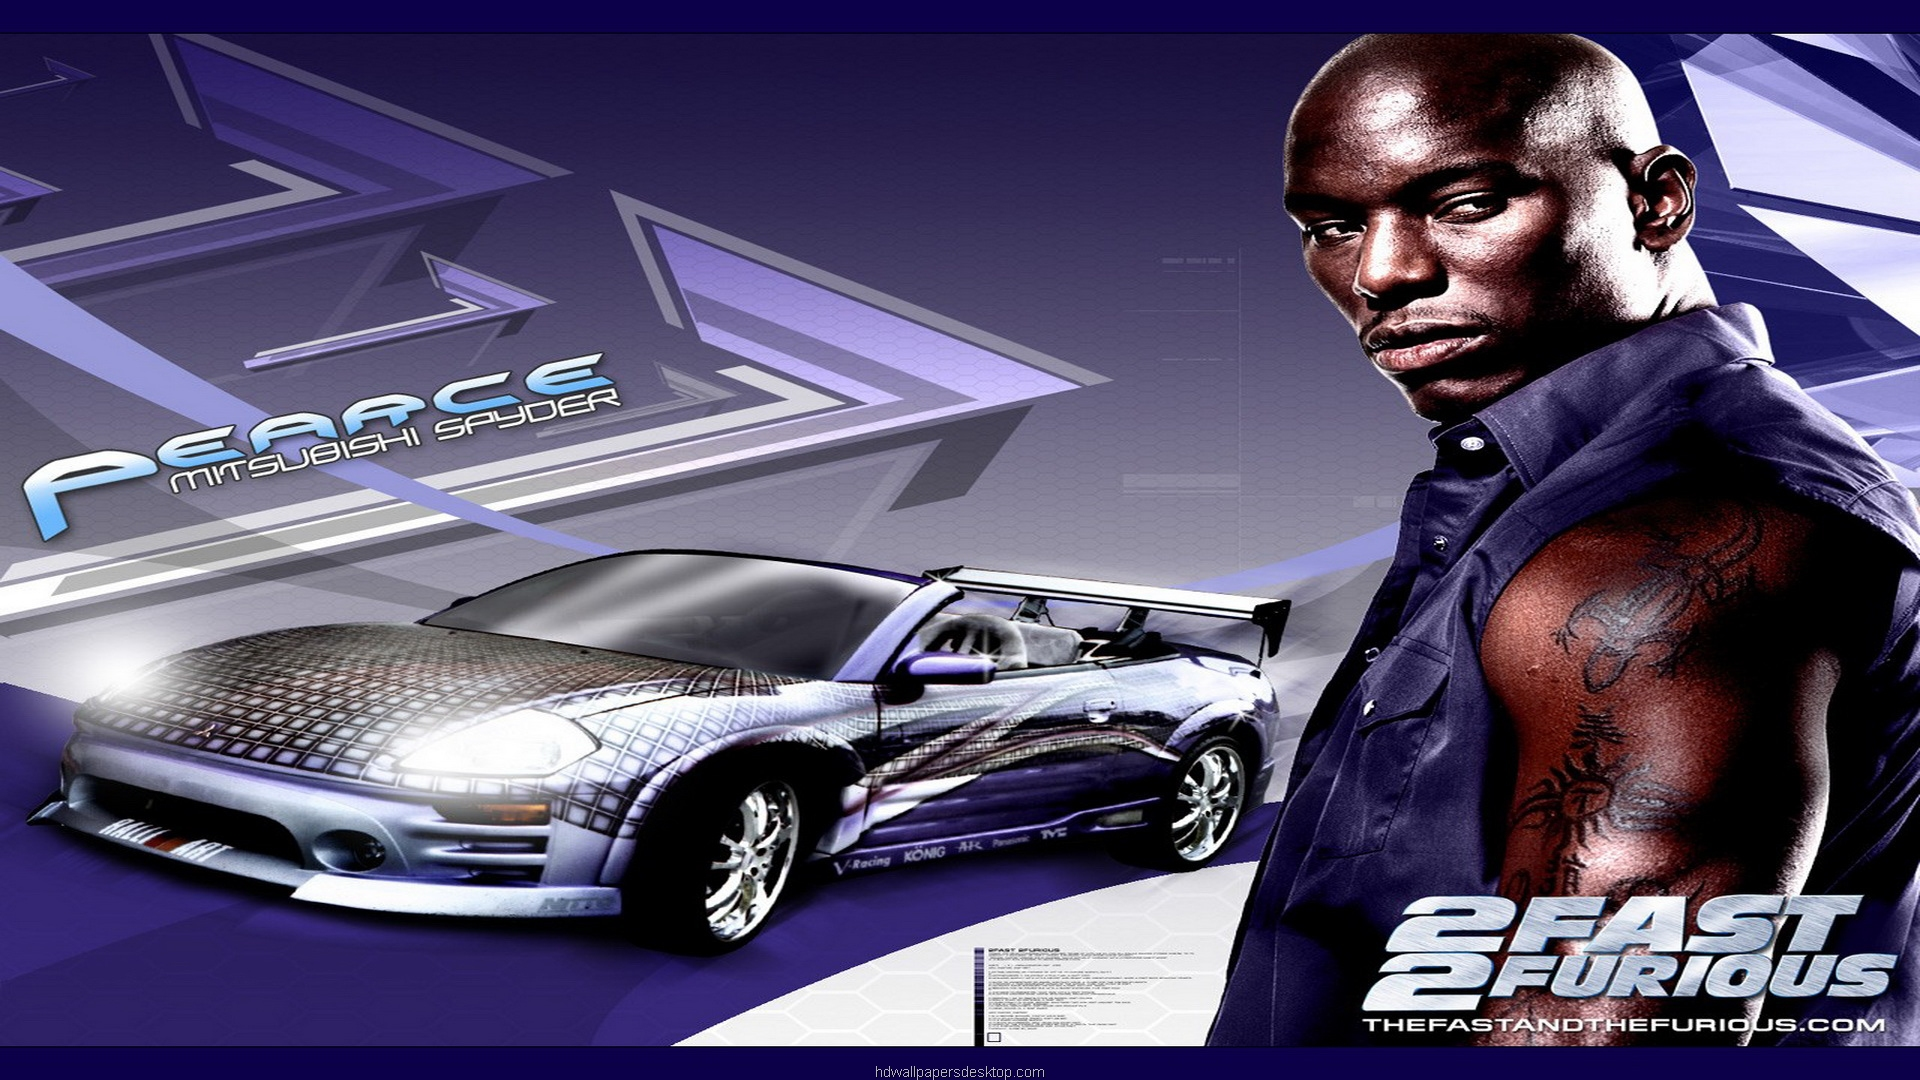 Fast 2 Furious Images Crazy Gallery 1920x1080